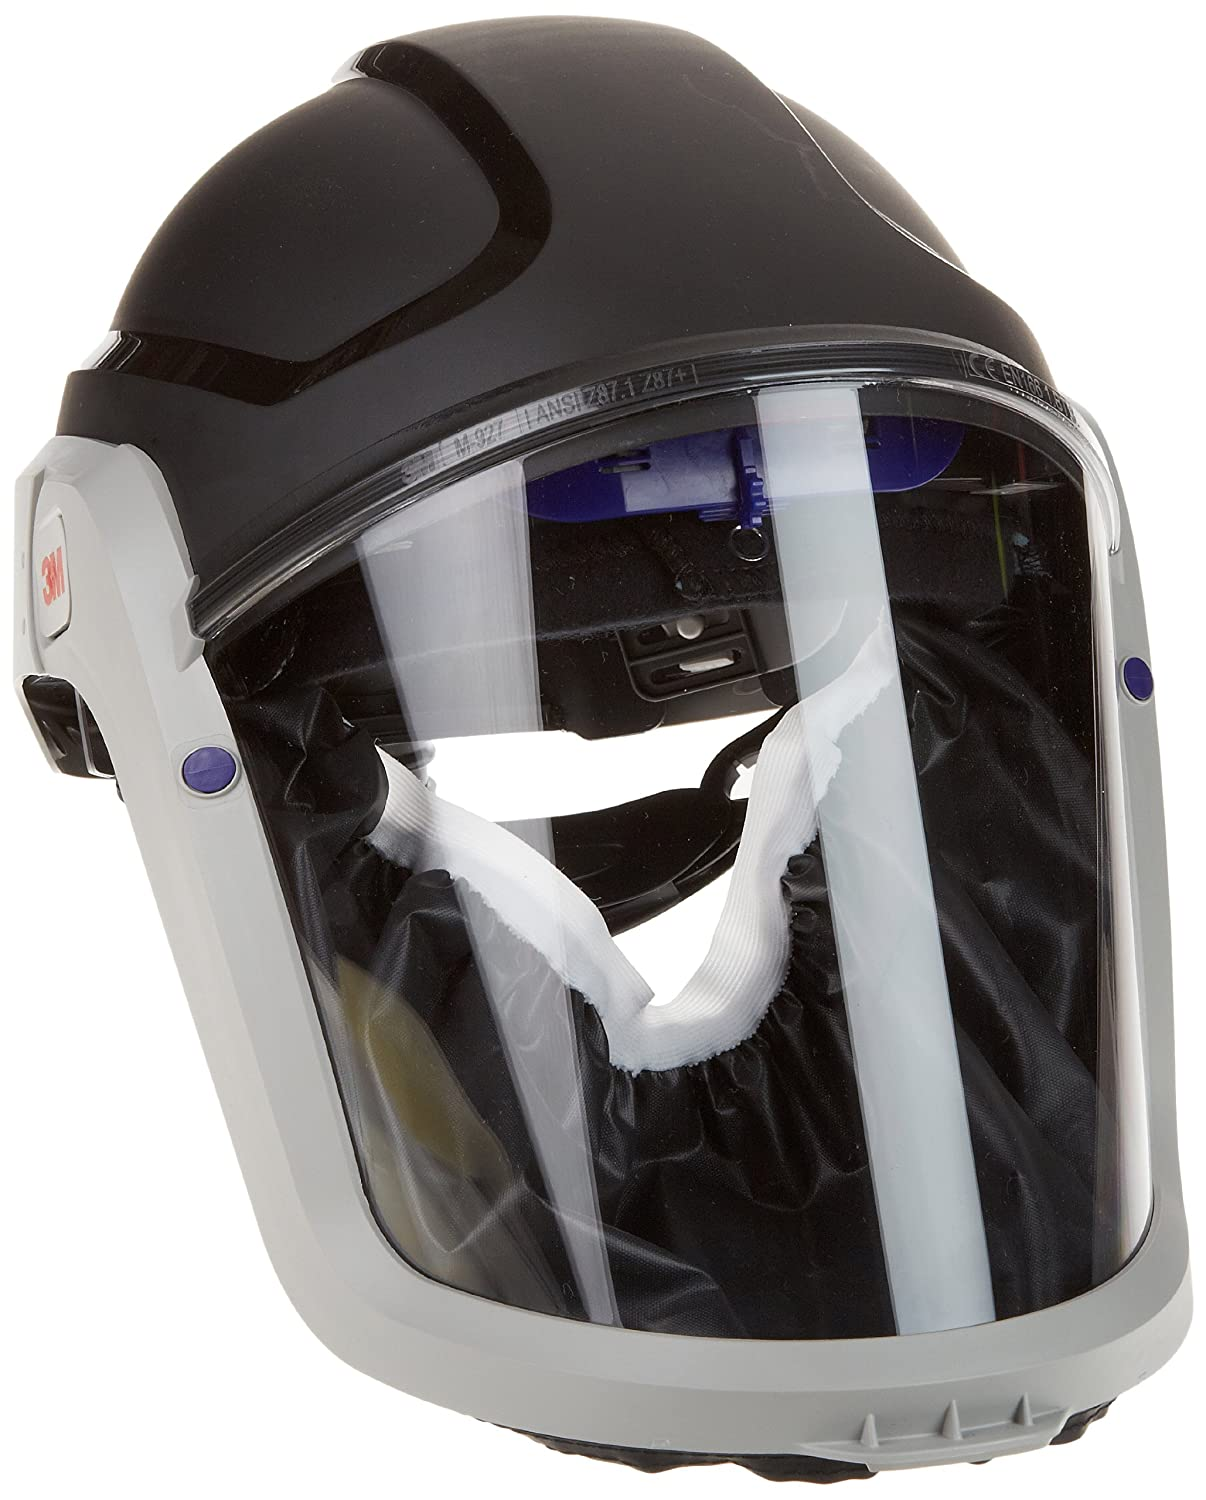 3M Versaflo Respiratory Hard Hat Assembly M-307, with Premium Visor and Faceseal, 1 EA/Case